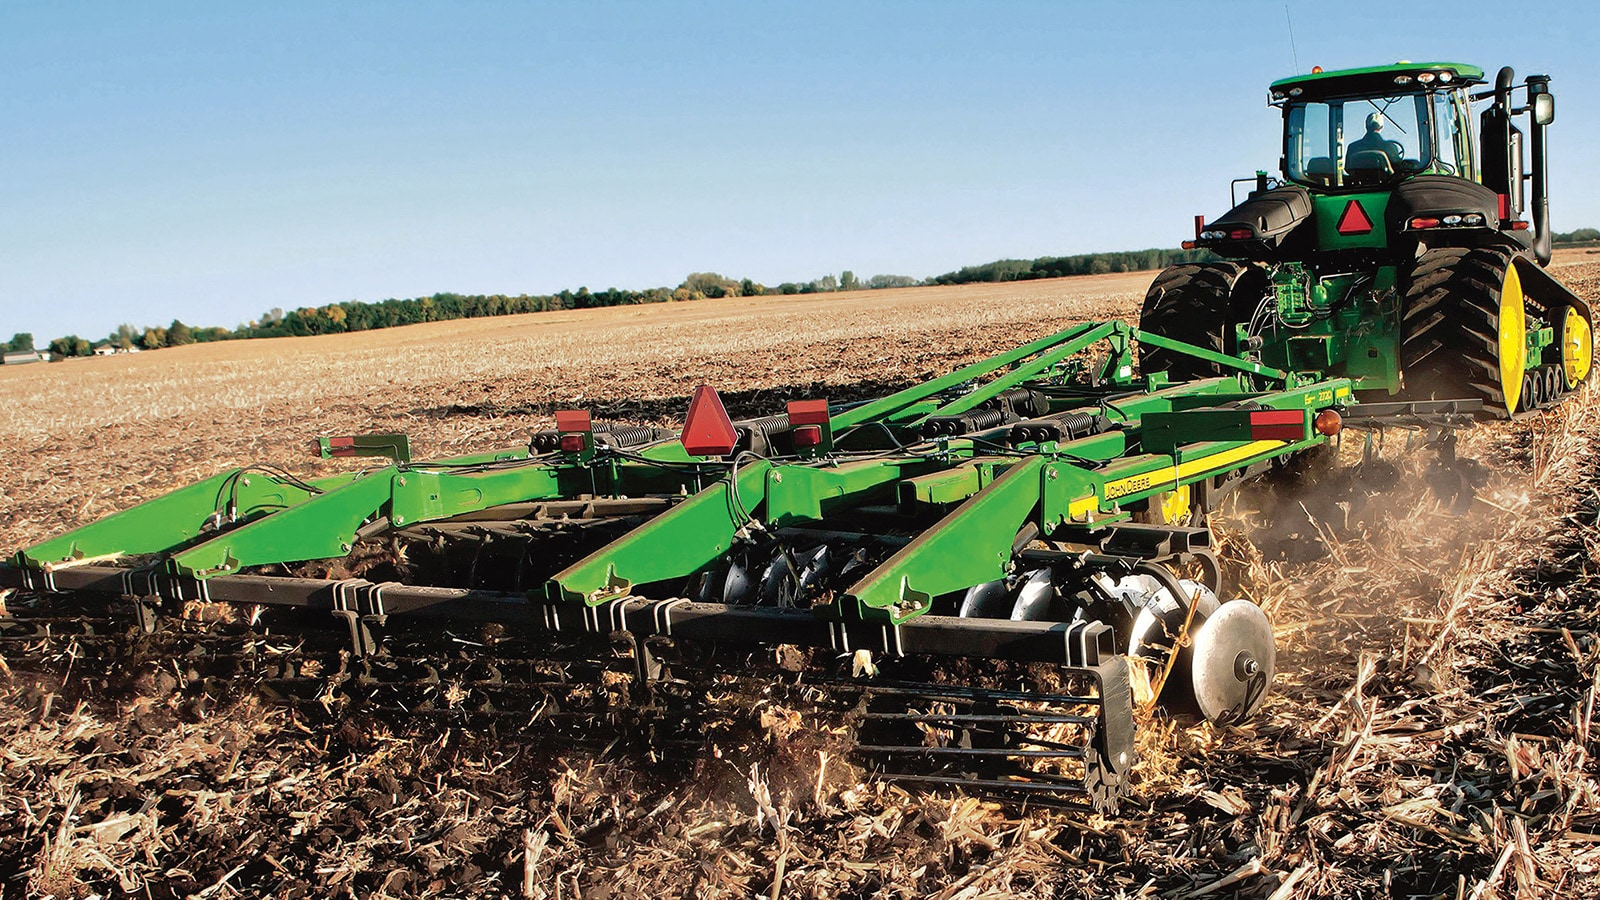 Customers with late model John Deere tillage tools, including the 2720 Disk Ripper, can now add TruSet Technology to these implements.